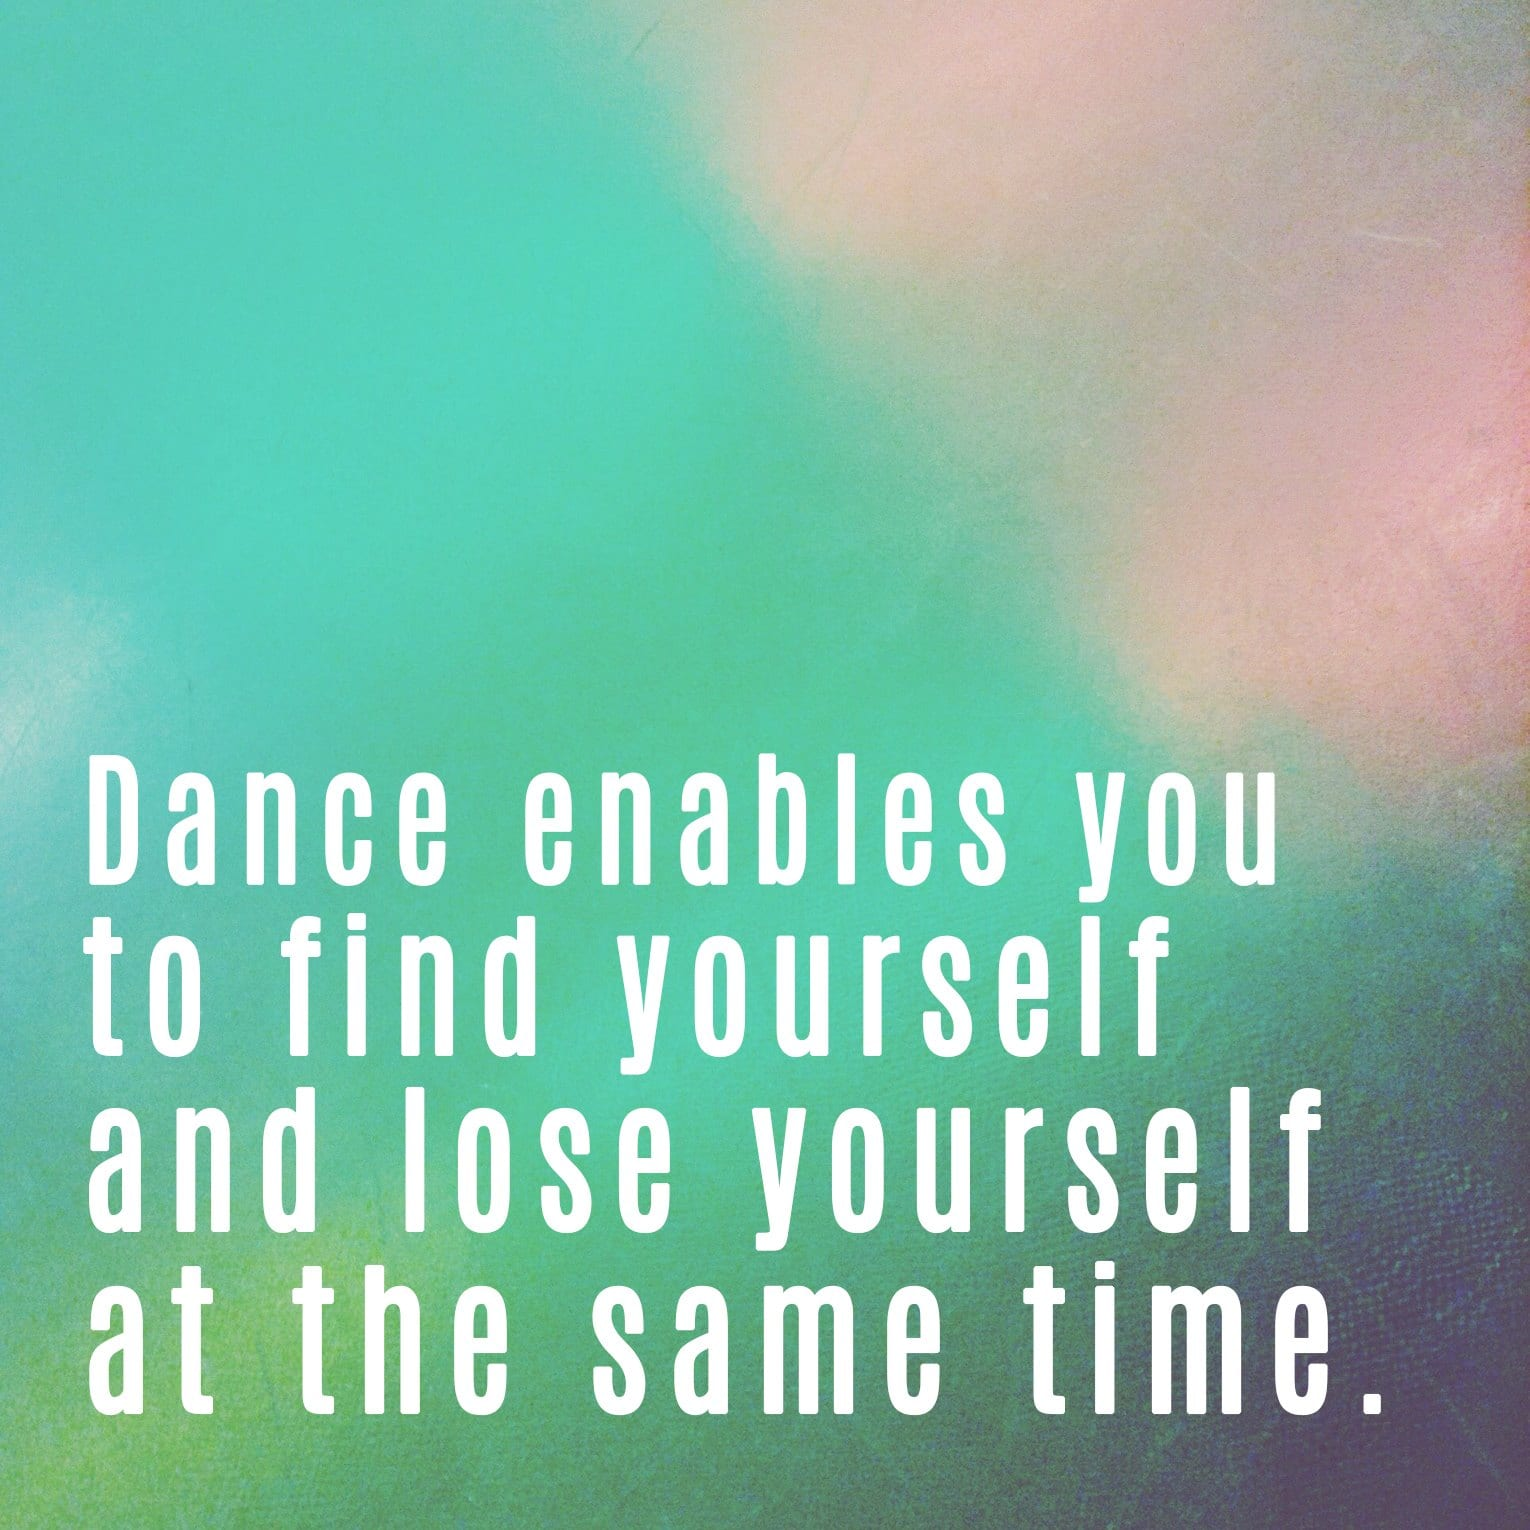 Inspirational Dance Quotes 12 Inspirational Dance Quotes | The Radio City Rockettes Inspirational Dance Quotes